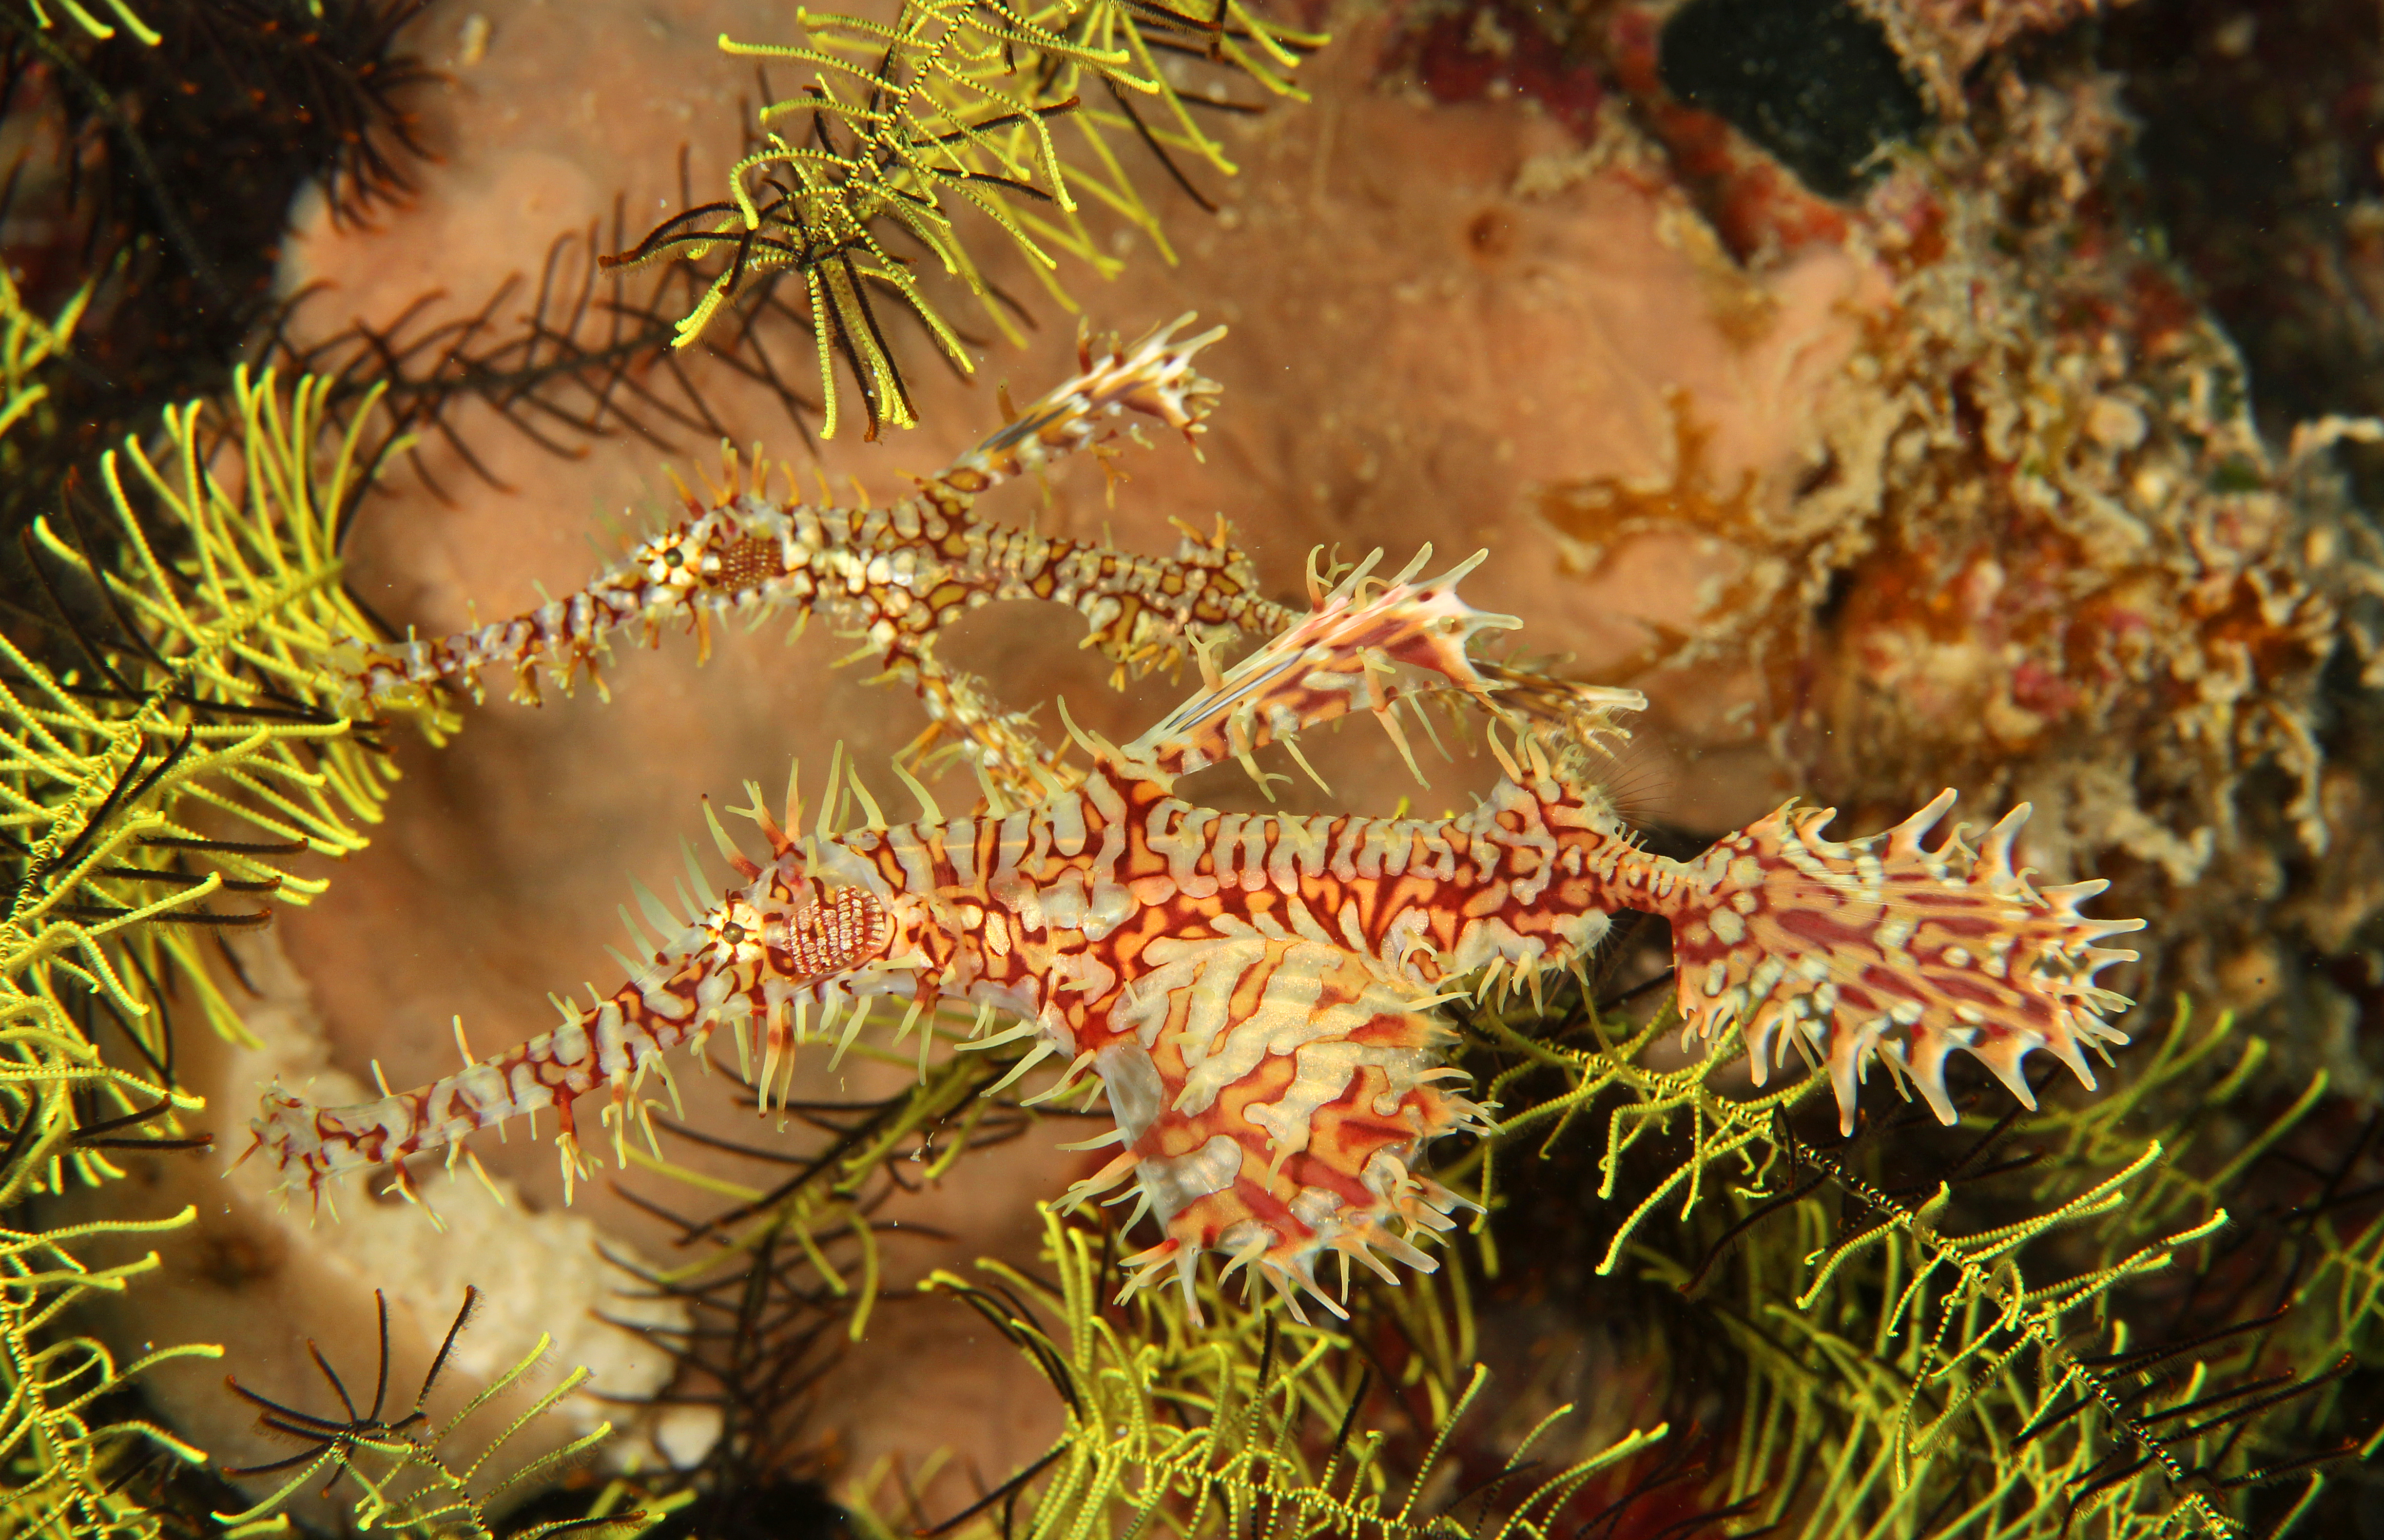 Ornate Ghosth Pipefish